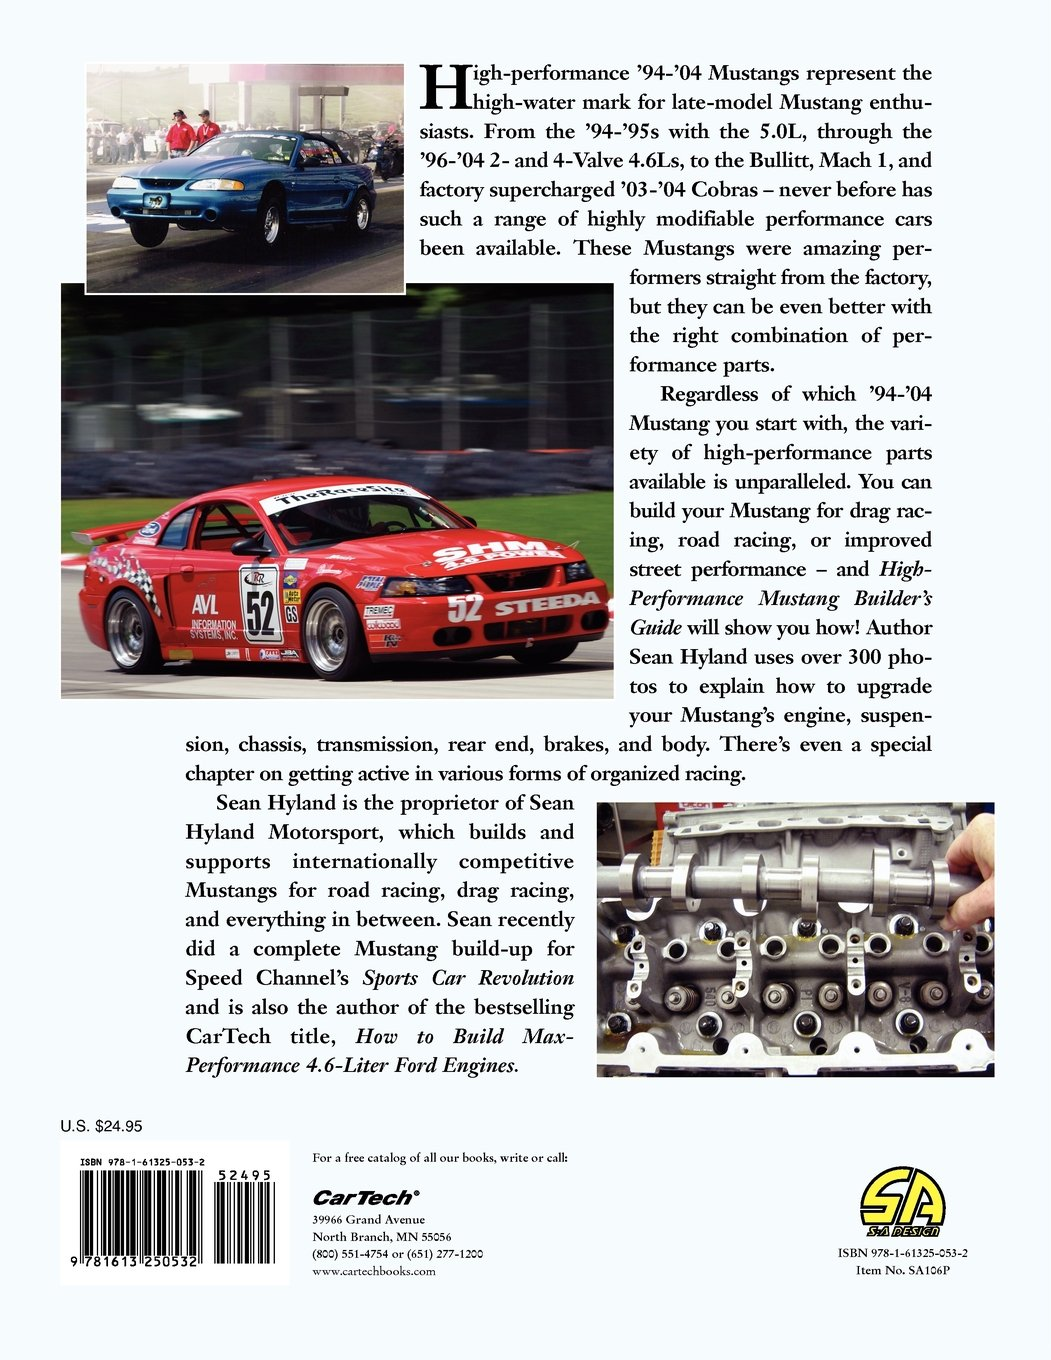 High-Performance Mustang Builder's Guide 1994-2004: Sean Hyland:  9781613250532: Amazon.com: Books